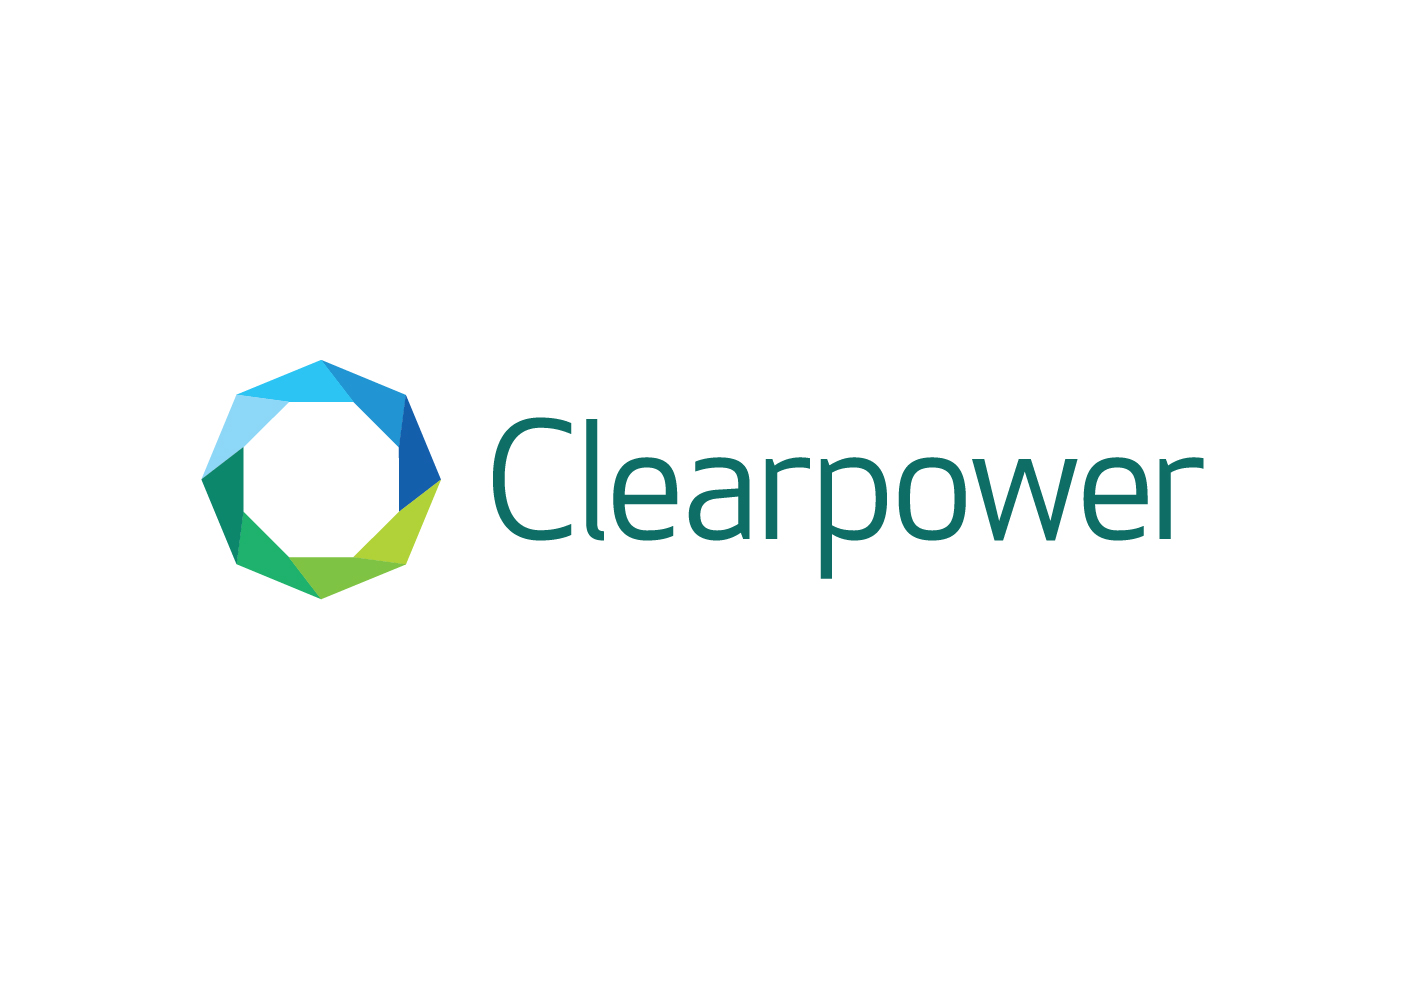 Cover image: Clearpower